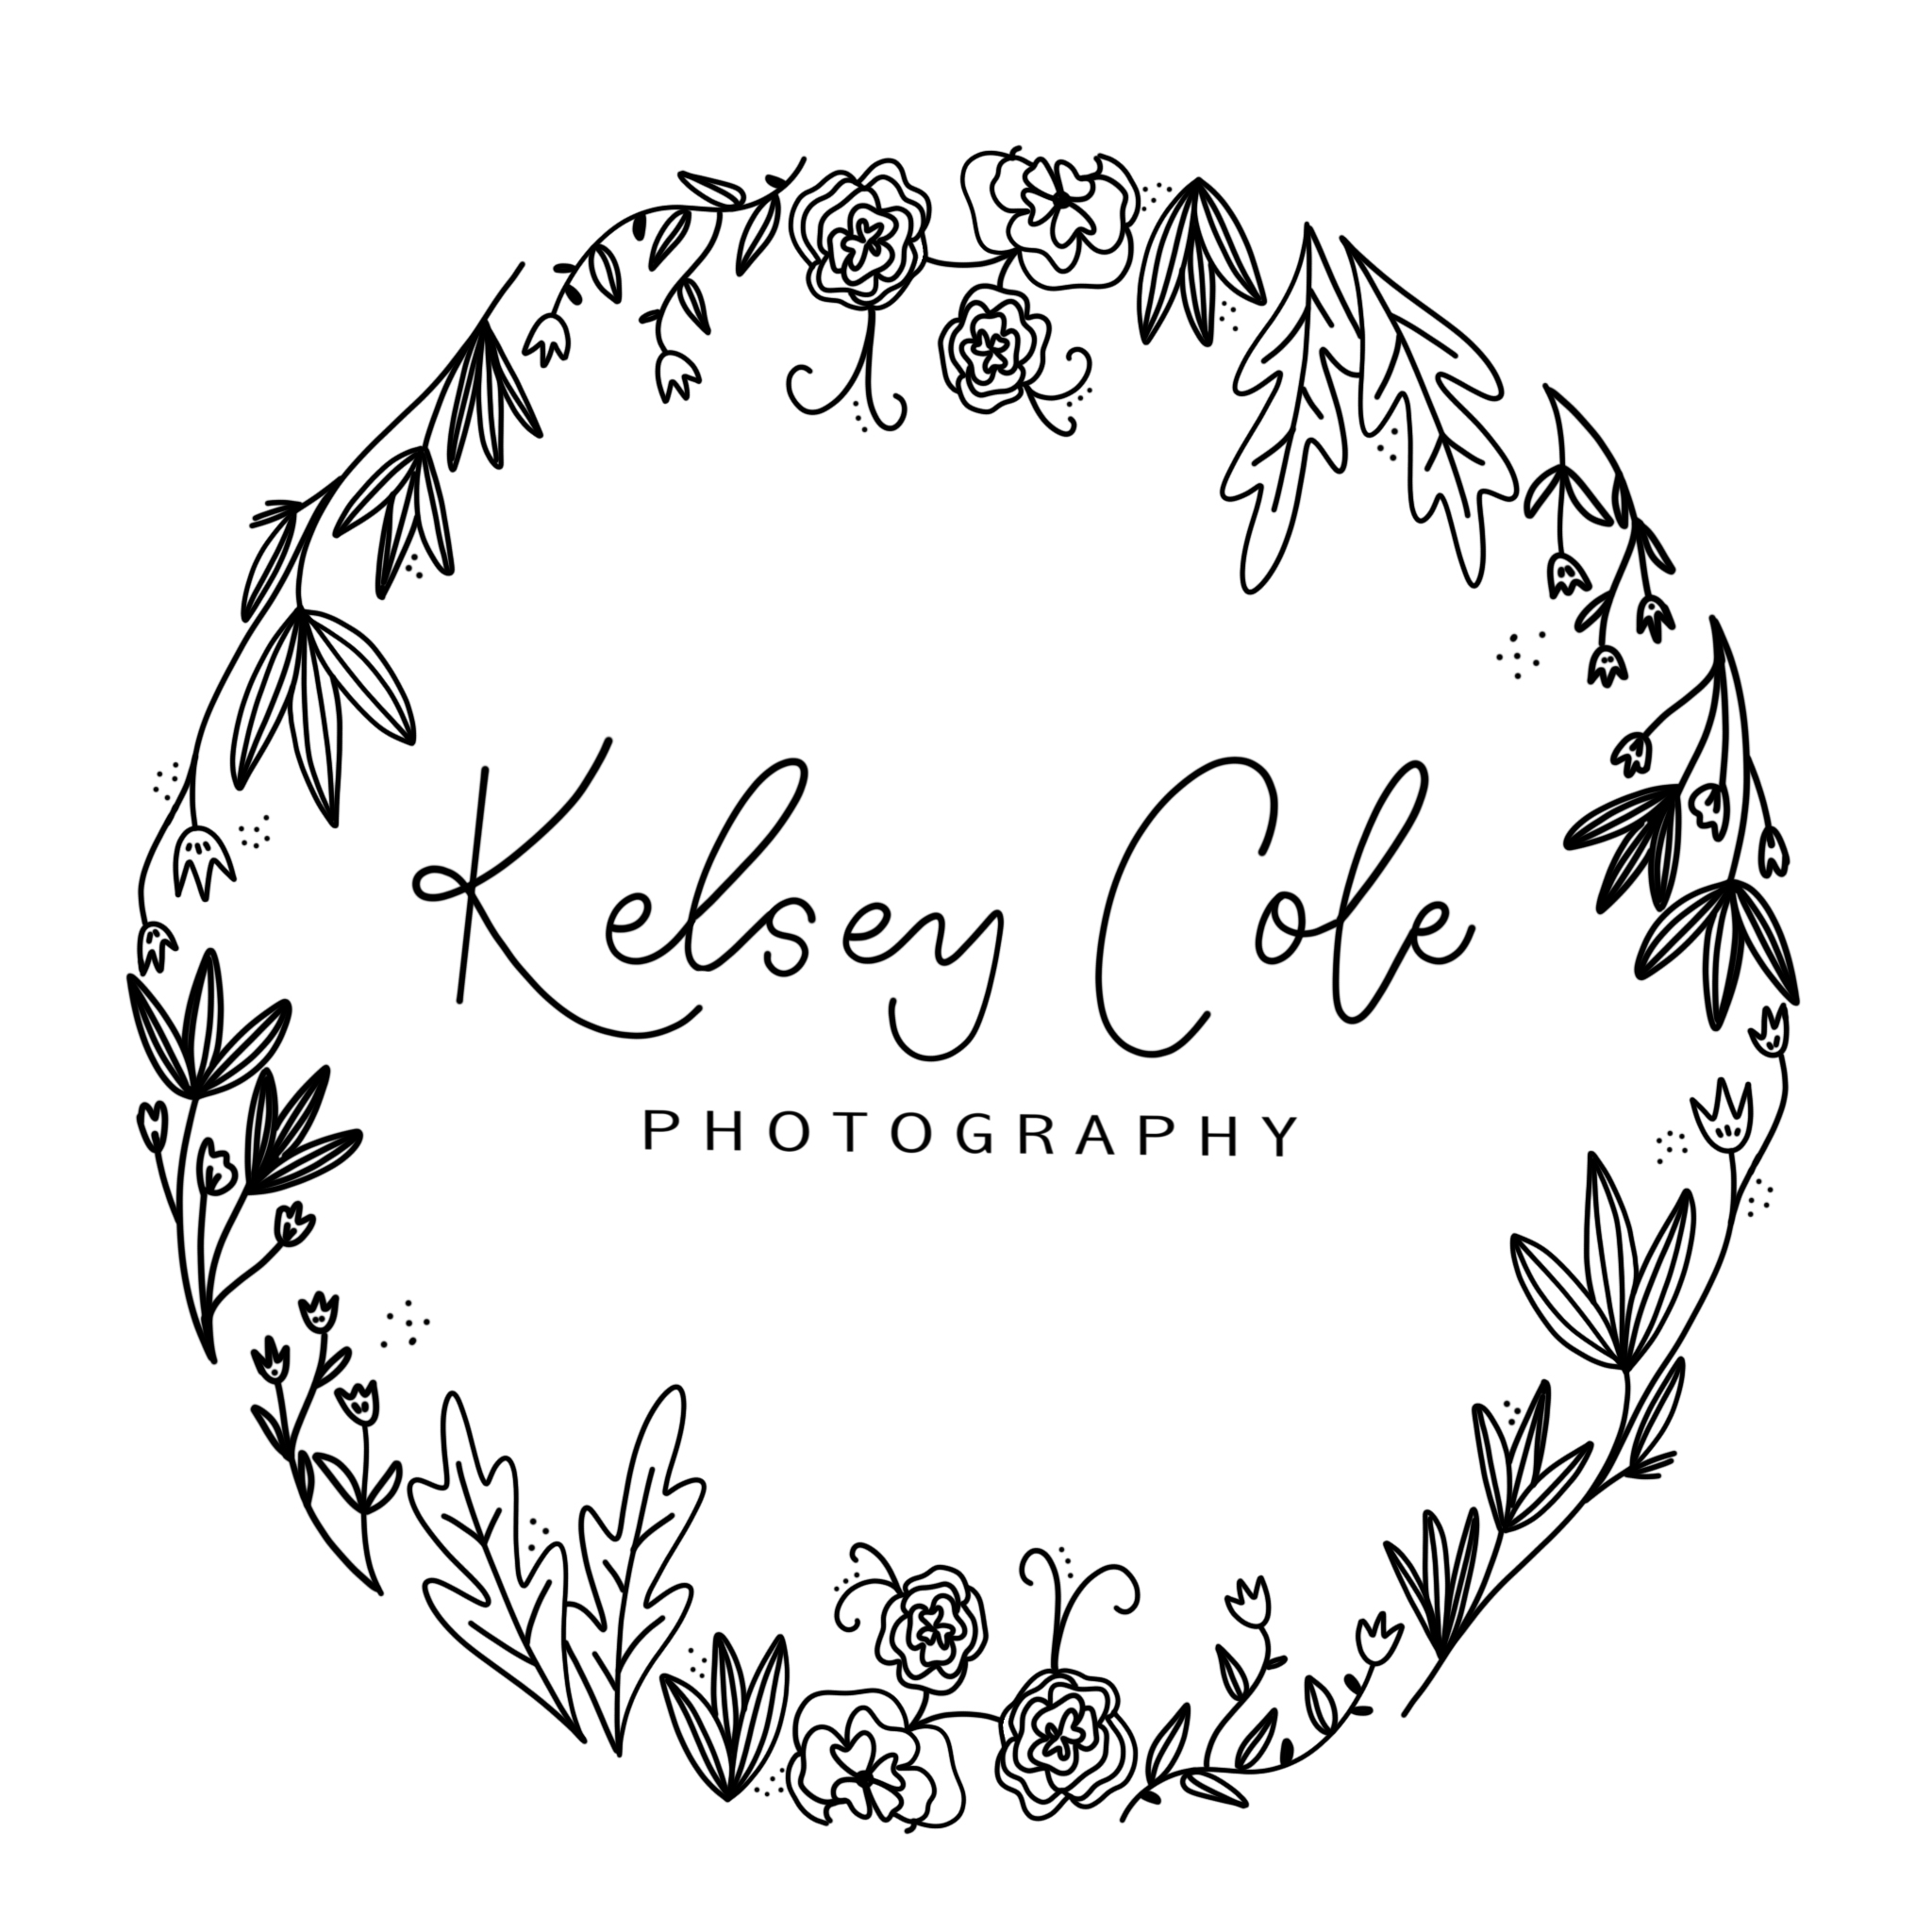 Kelsey Cole Photography